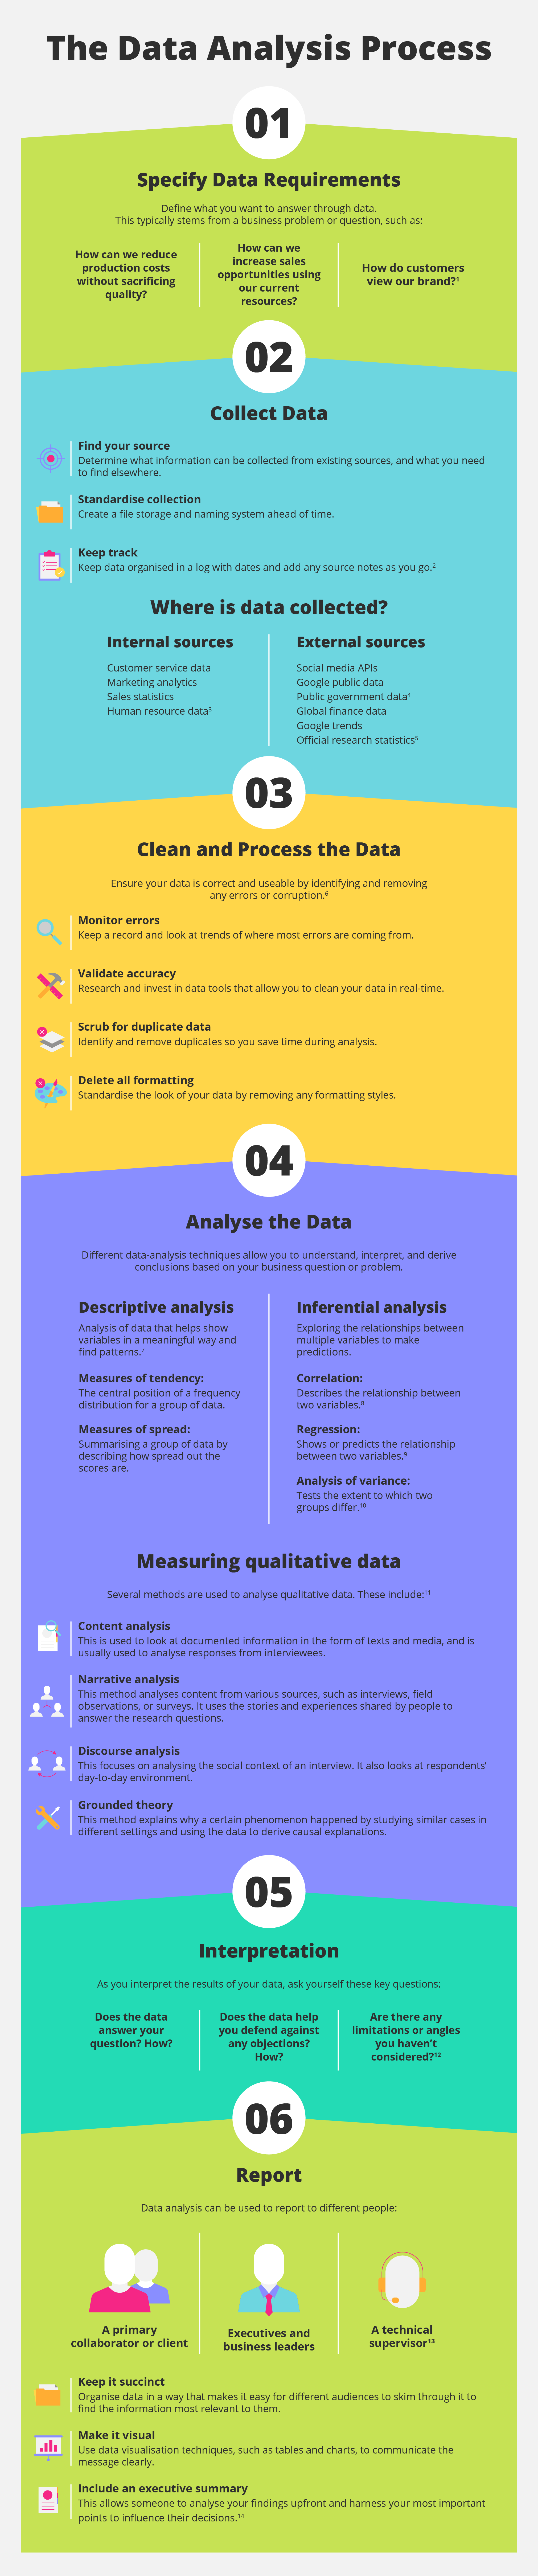 The data analysis process in 6 steps